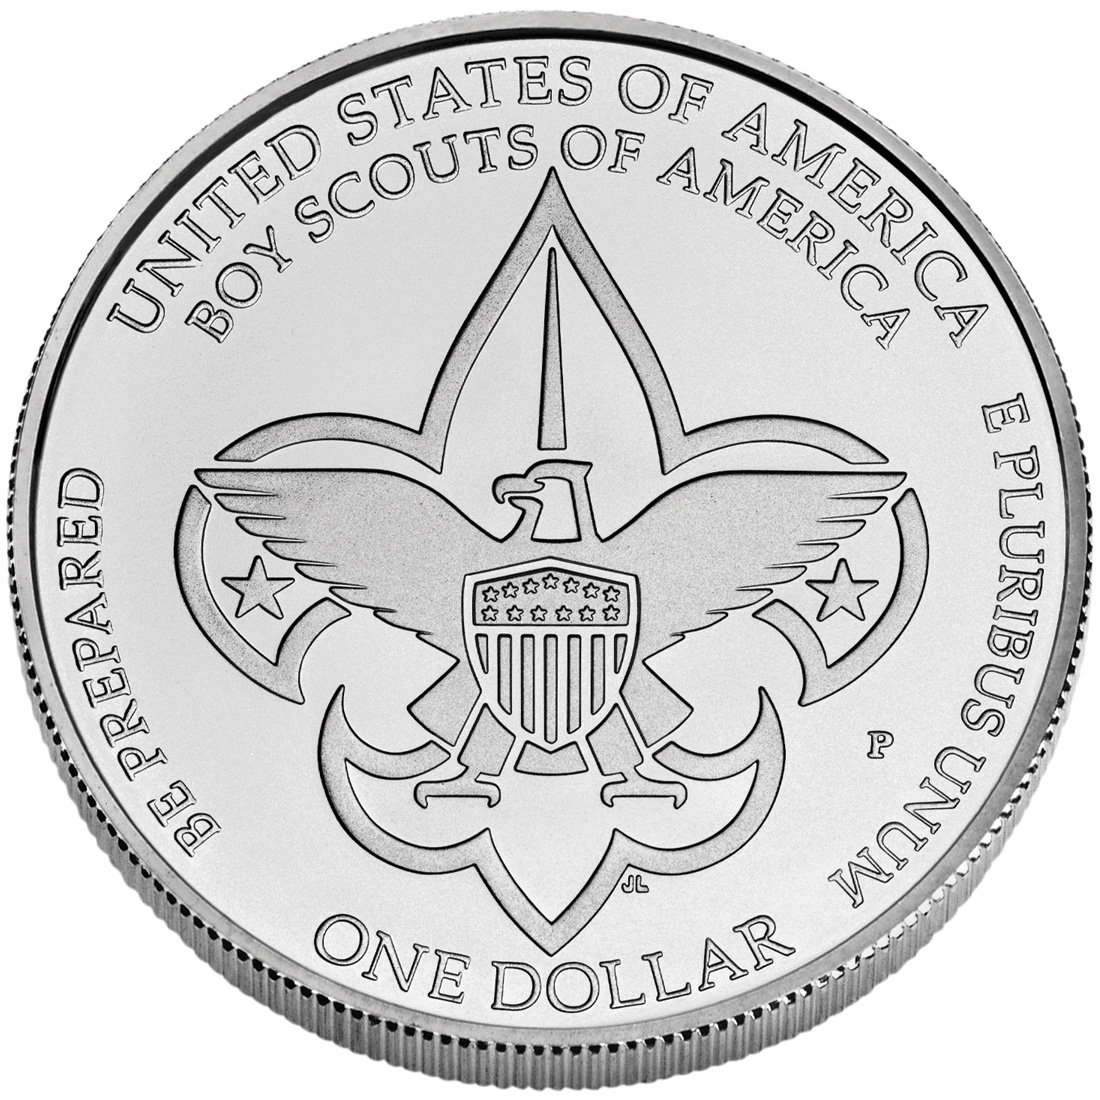 2010 Boy Scouts Of America Centennial Commemorative Silver One Dollar Uncirculated Reverse